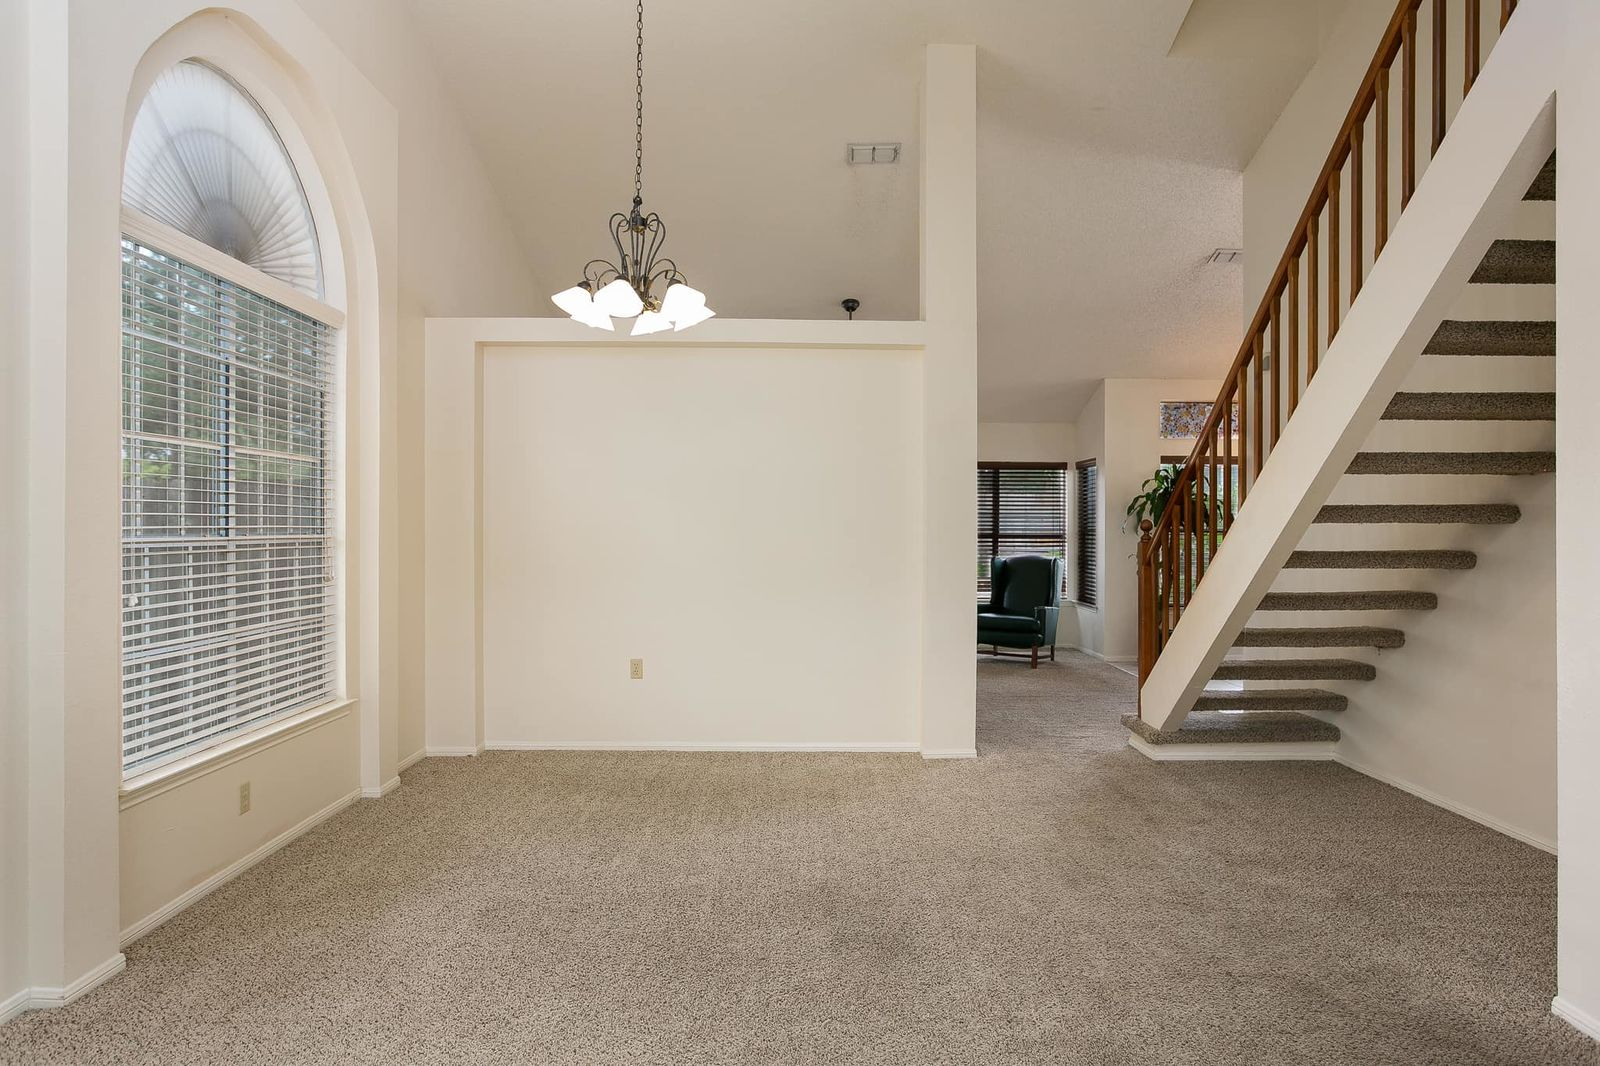 Spot 'Pennywise' the clown in this real estate listing (Courtesy: Kristy Dakin, realtor; Bright and Early Productions)